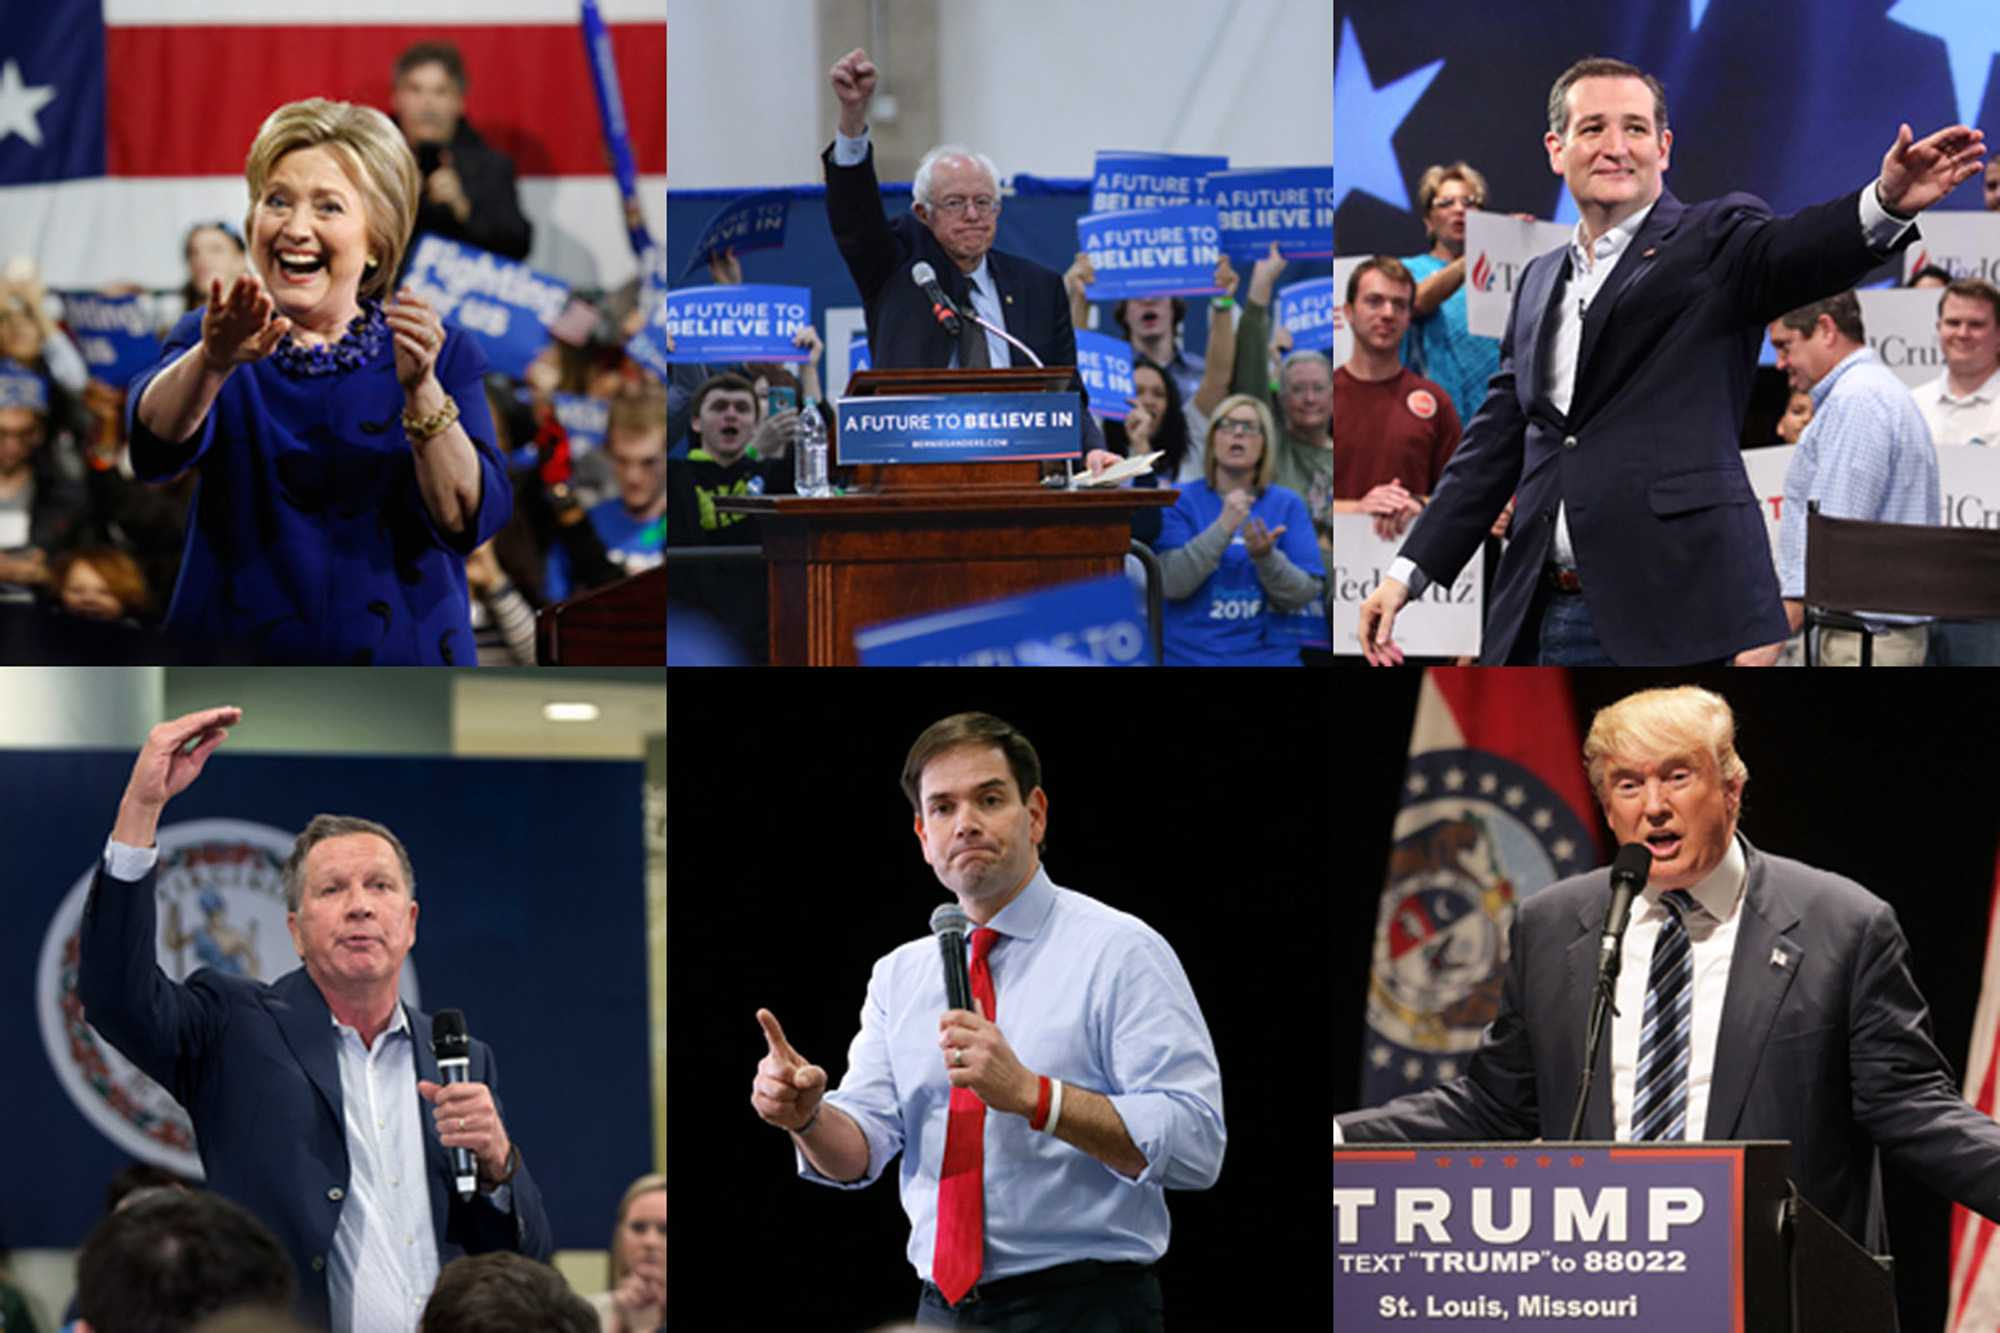 Tuesday+is+the+Illinois+Primary.+Learn+more+about+where+each+candidate+stands+on+the+biggest+issues+facing+the+U.S.